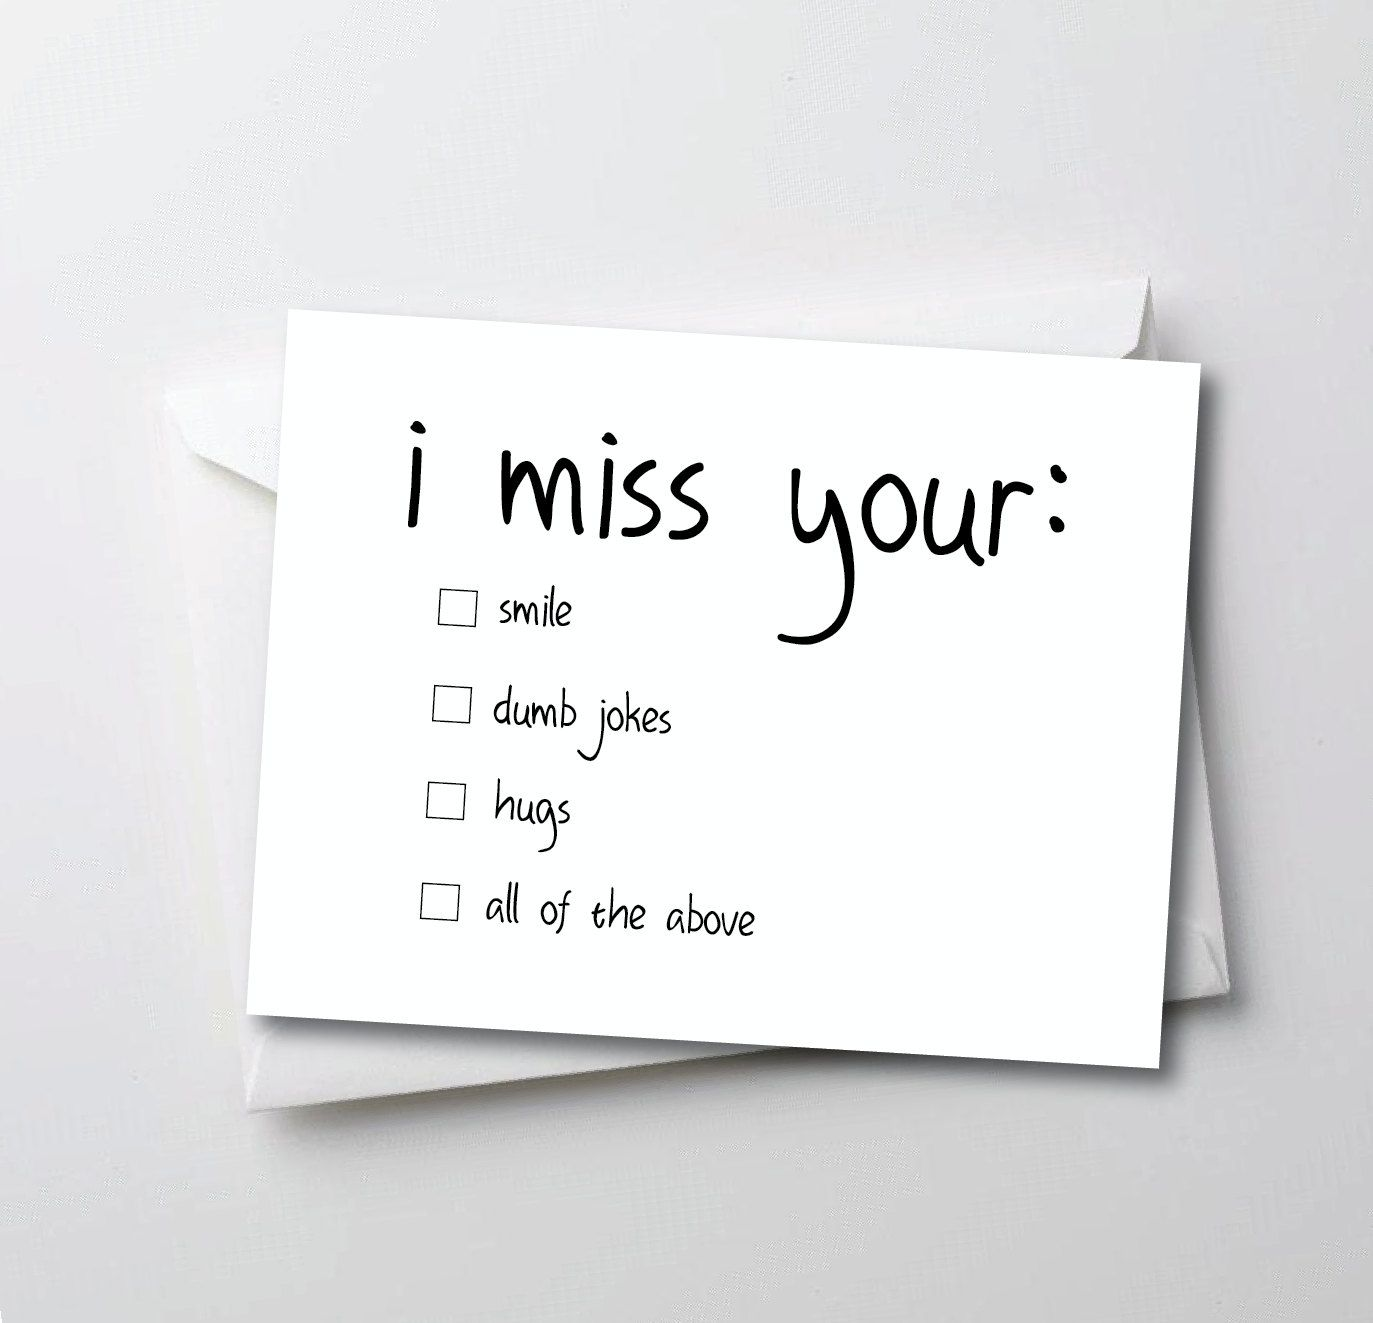 Seemly Miss You Ny Messages Miss You Ny S Ny I Miss You Card I Miss Your Dumb All Above By Jessicafergusonart On Etsy Ny I Miss You Card I Miss Your Dumb All